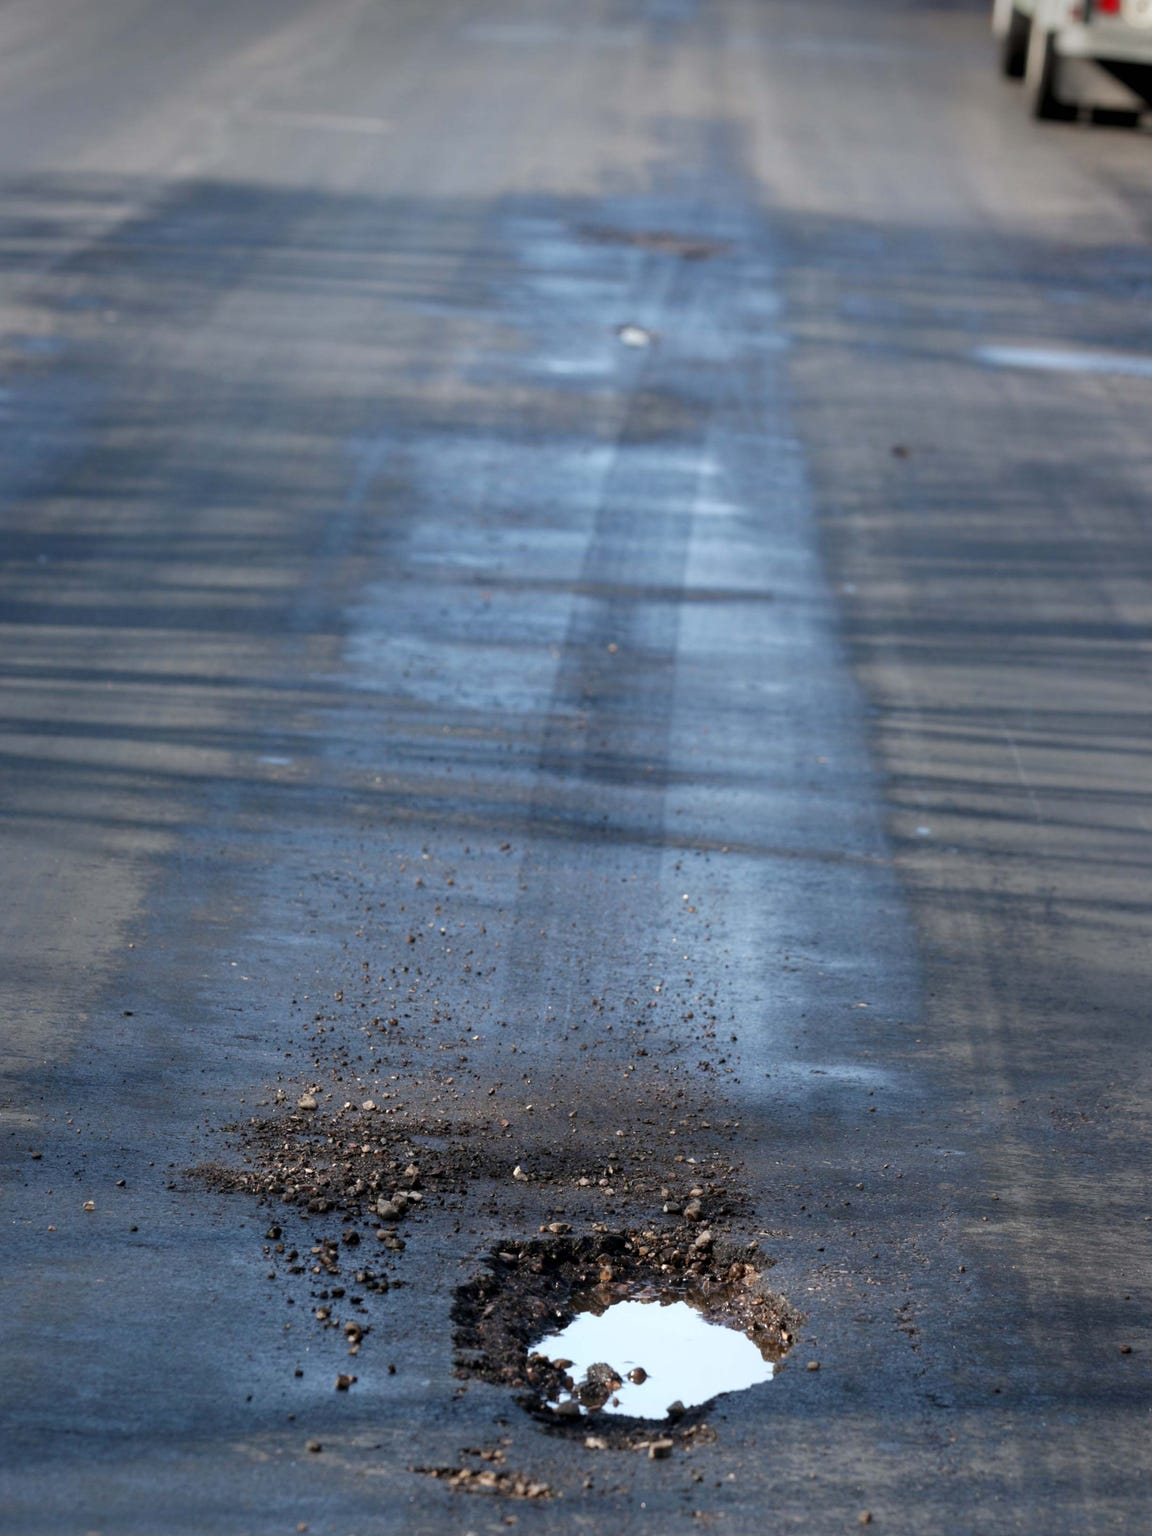 Potholes are becoming apparent in the 2500 block of